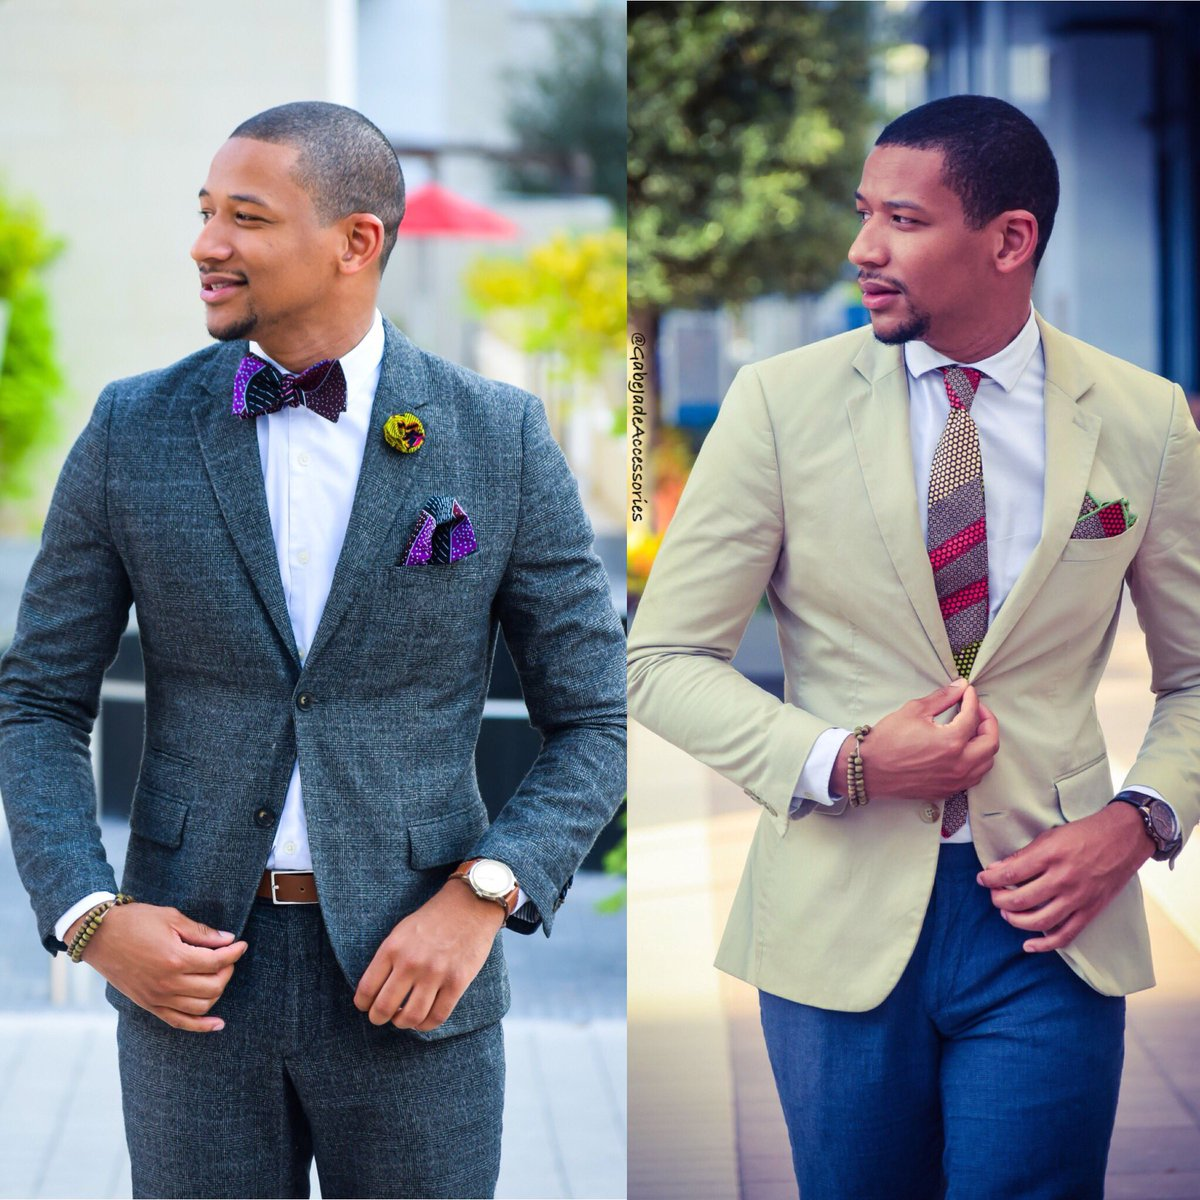 #QuestionTime  Neckties or Bowties? Reply below #Mensfashion #menstyle #menswear #fashionblogger #fblogger #bbloggers #BlackExcellence #polls #TuesdayThoughts<br>http://pic.twitter.com/haXYvDvBBq